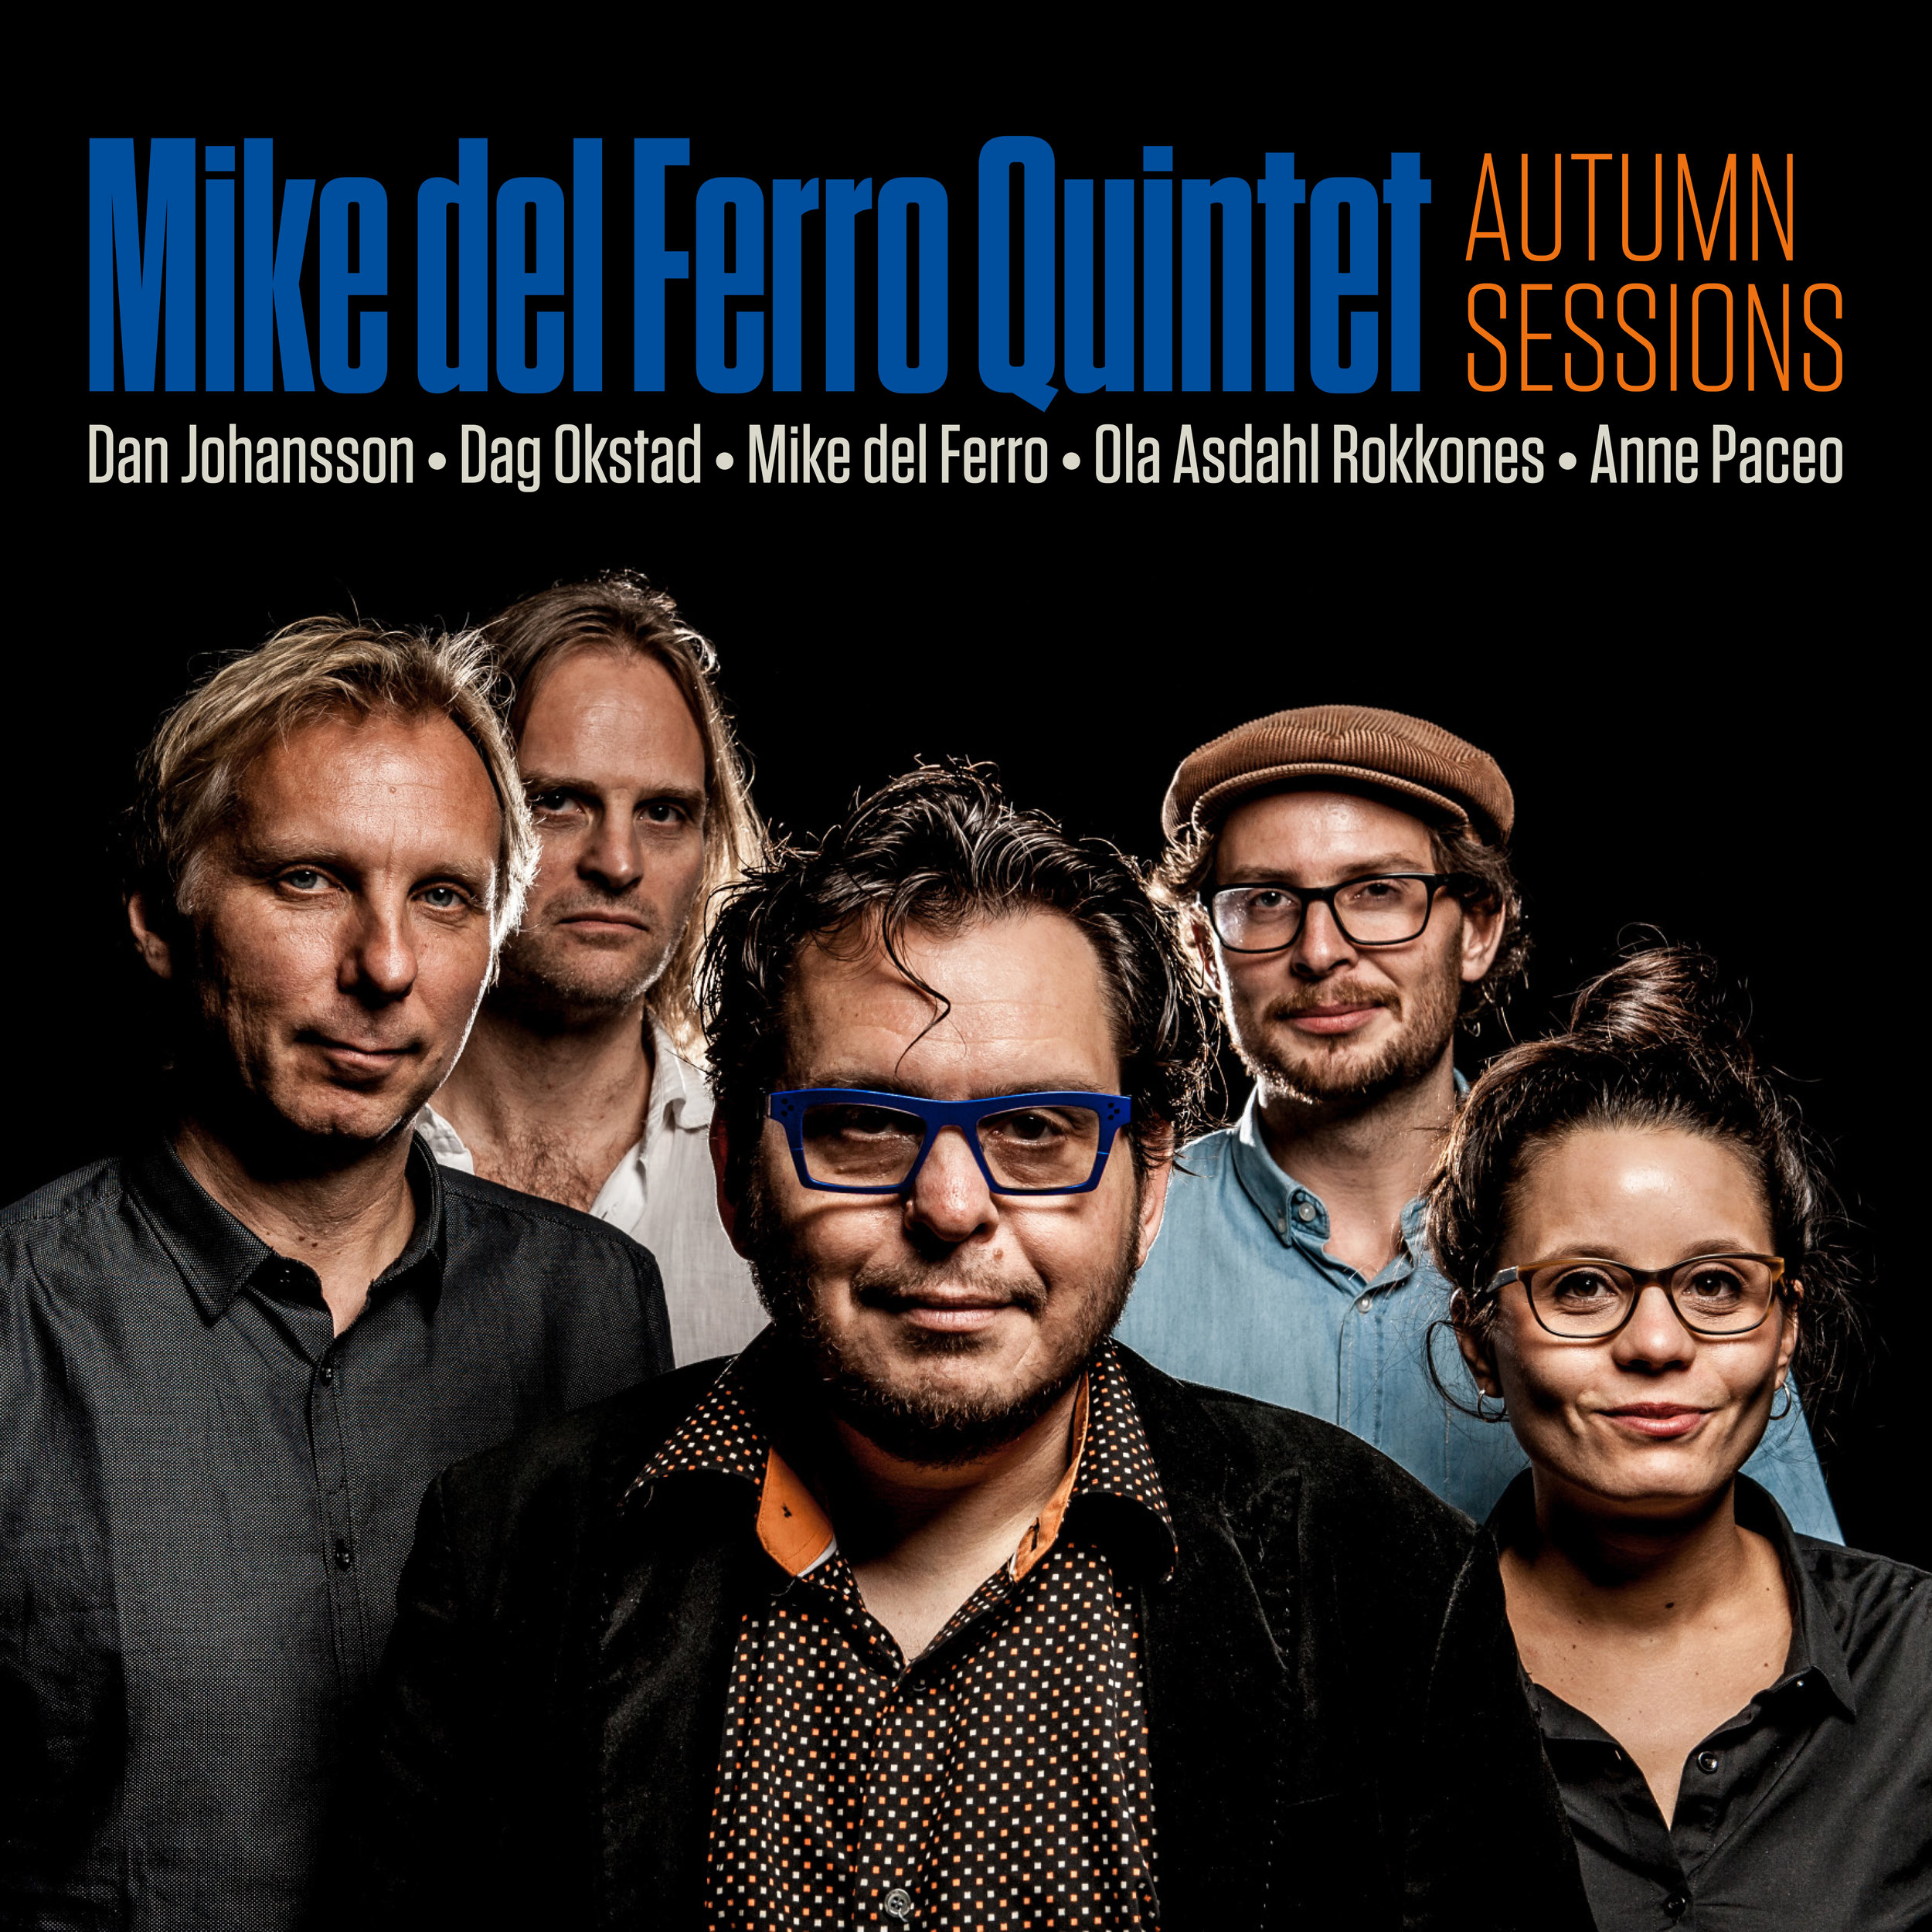 Autumn Sessions - Finito Bacalao Records - 2018With five stylistically different musicians, from four different European countries, people could be wondering what to expect. Yet, the music is melodic and thriving, with a strong jazz core. It combines key elements from both Norwegian, Dutch, Swedish and French jazz. Brought together in 2011, not only through music, but also through the fascination for Northern Norway, Mike del Ferro Quintet is indeed an unusual project. We hope you will enjoy this playful meeting between five friends, where we get to know the musicians both as instrumentalists and composers.Mike del Ferro - pianoDan Johansson - trumpetOla Asdahl Rokkones - tenor saxophoneDag Okstad - double bassAnne Paceo - drumsFind the album on iTunes here.